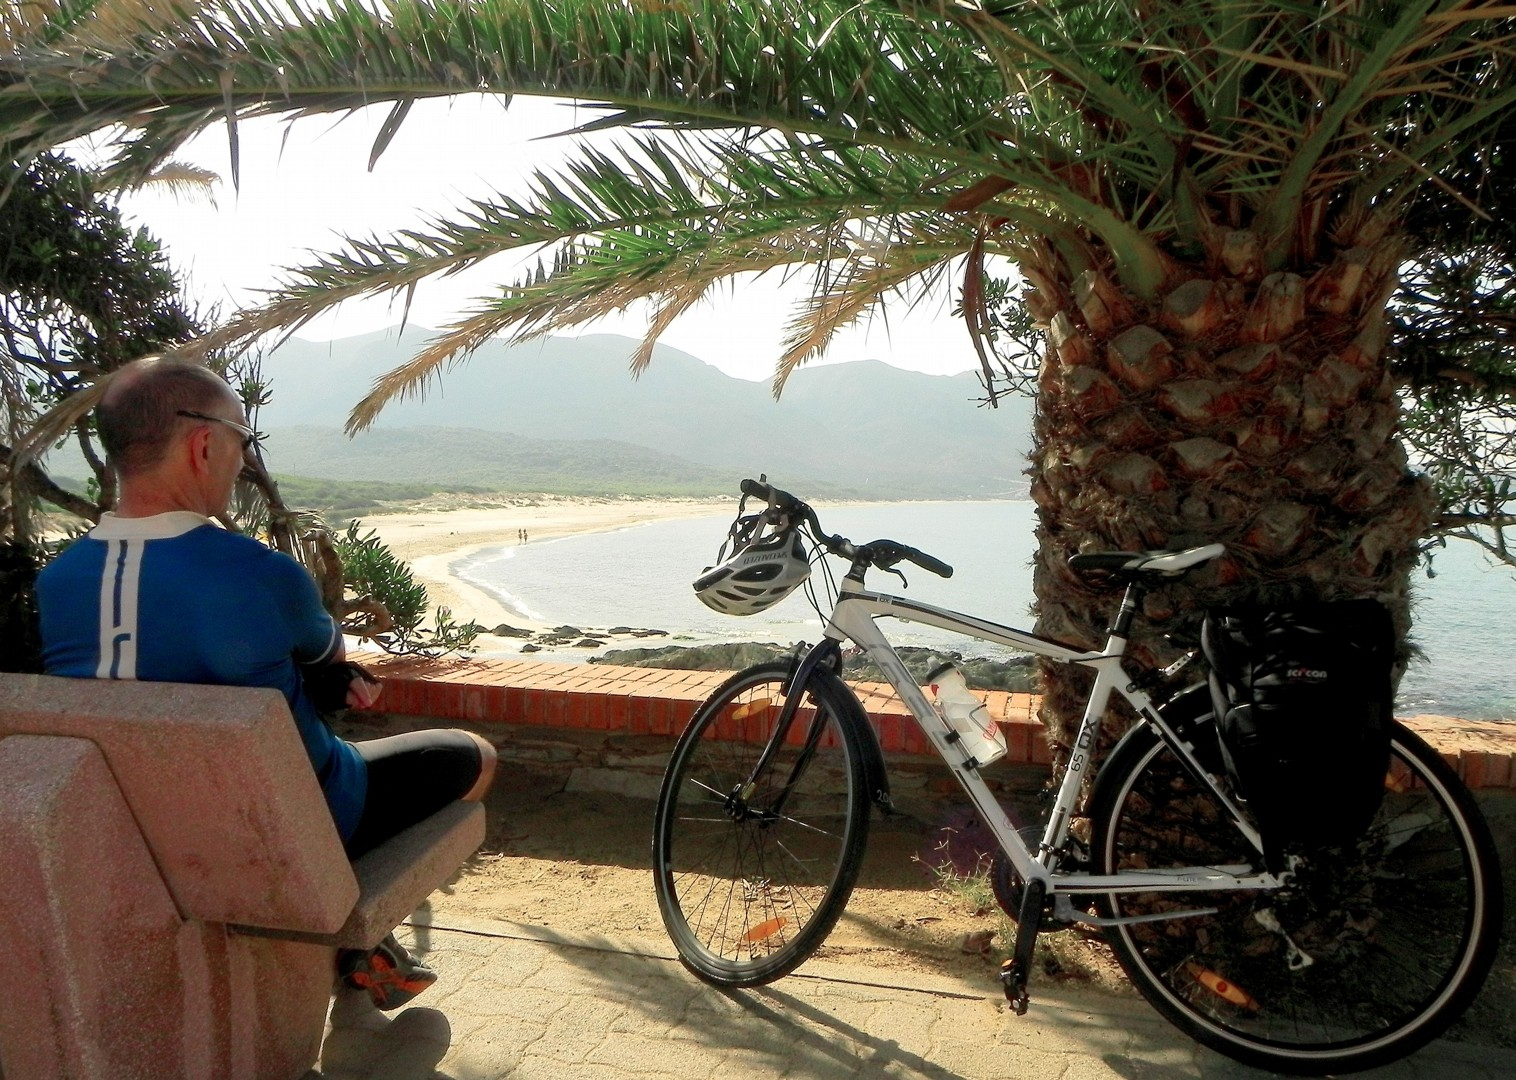 sea-views-island-cycling-tour-sardinia.jpg - Italy - Sardinia - Island Flavours - Guided Leisure Cycling Holiday - Italia Leisure and Family Cycling